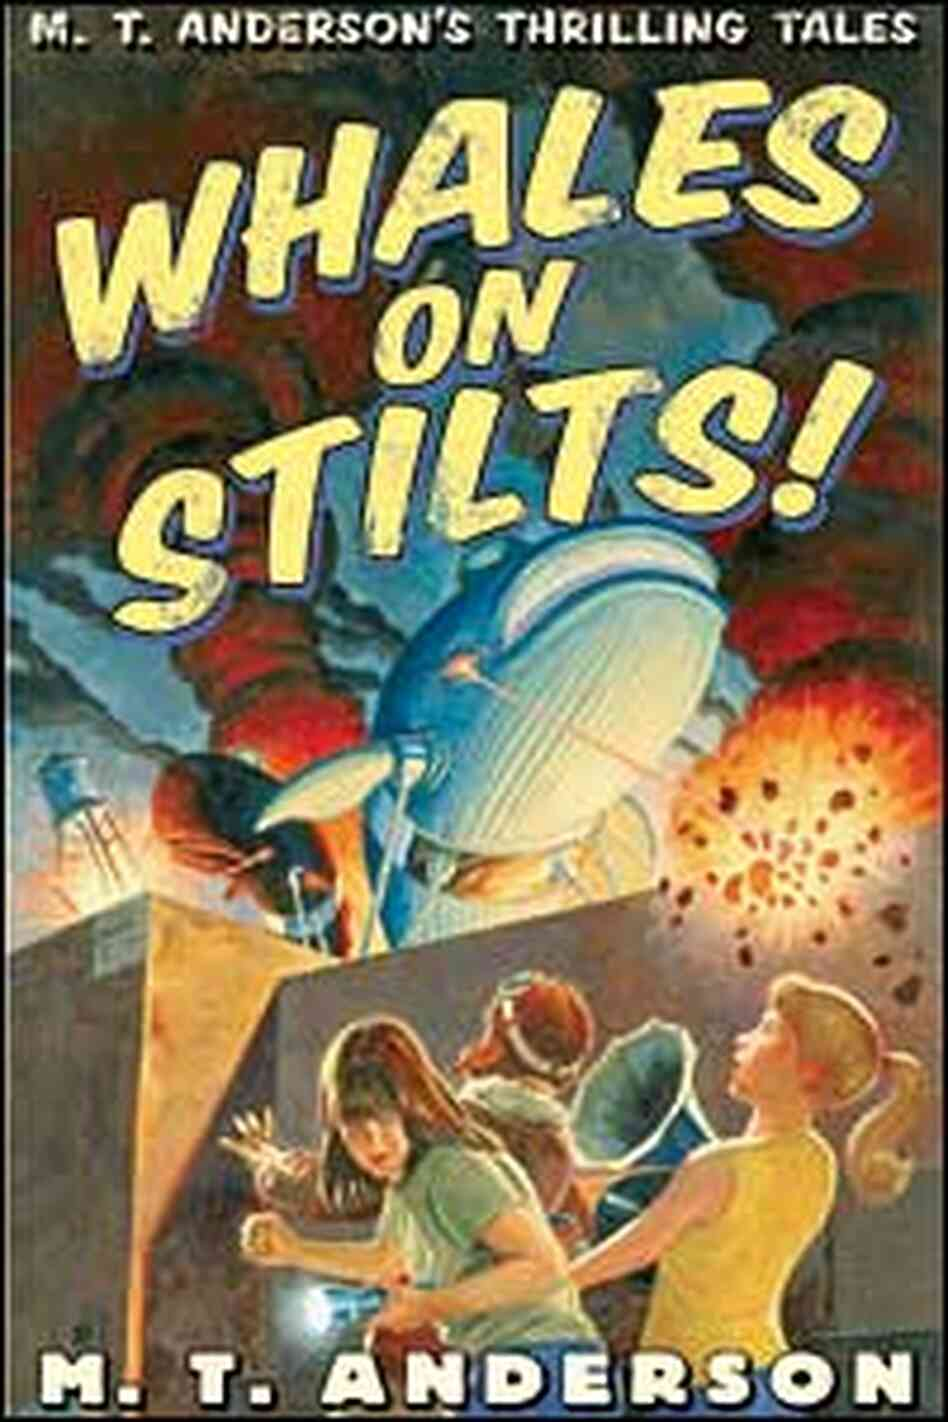 Cover of 'Whales on Stilts'